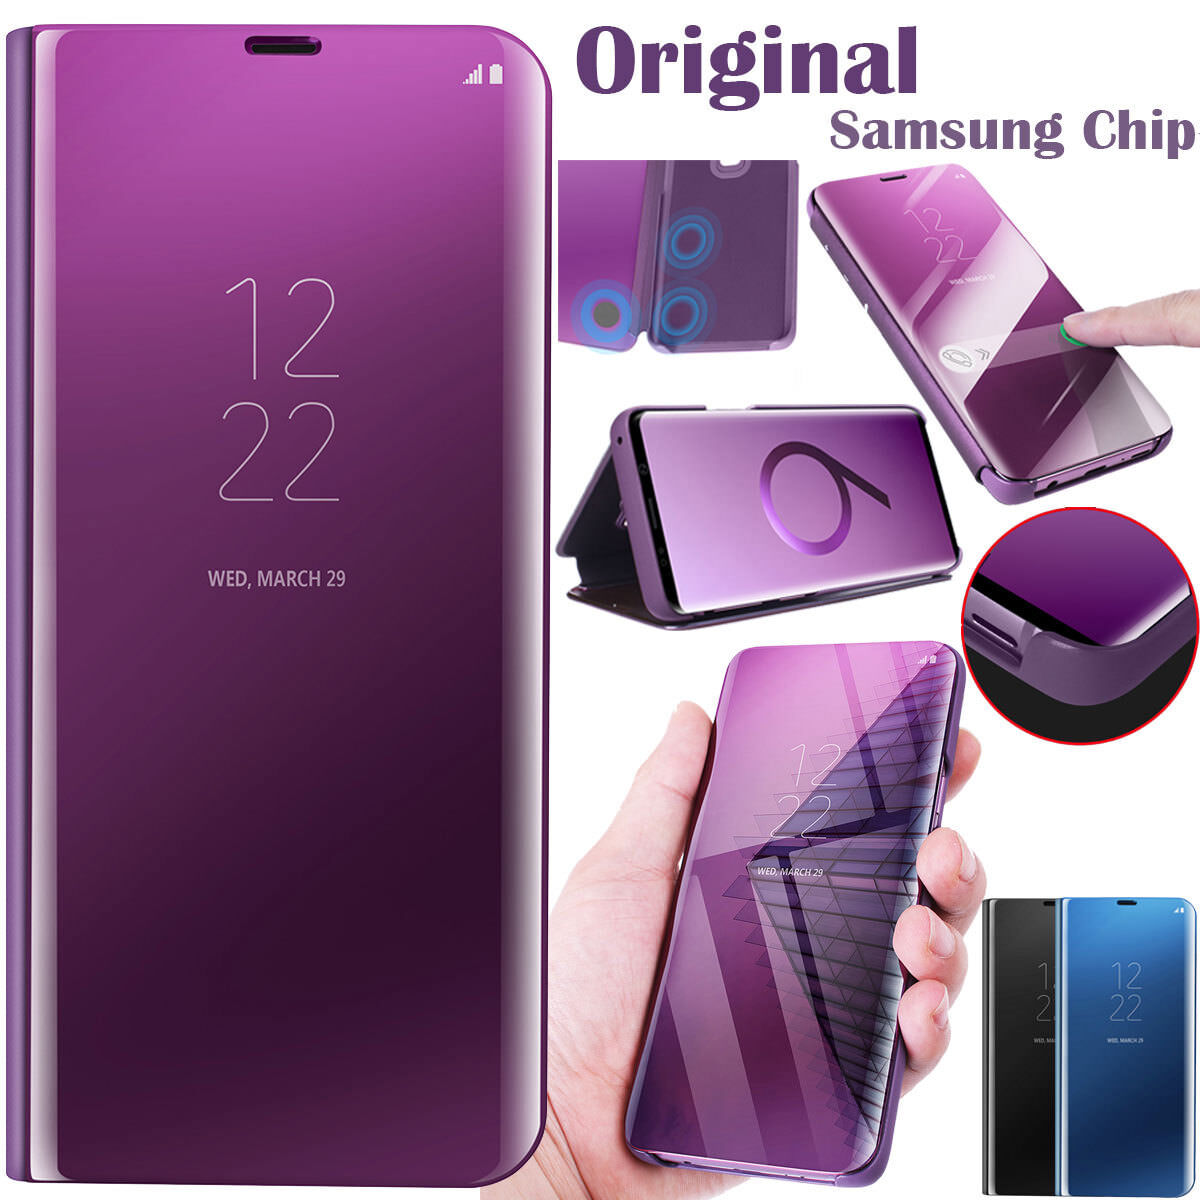 brand new 82cf6 b4b33 Details about S-View Smart Chip Mirror Flip Leather Cover Case For Samsung  Galaxy S9 S8 Plus